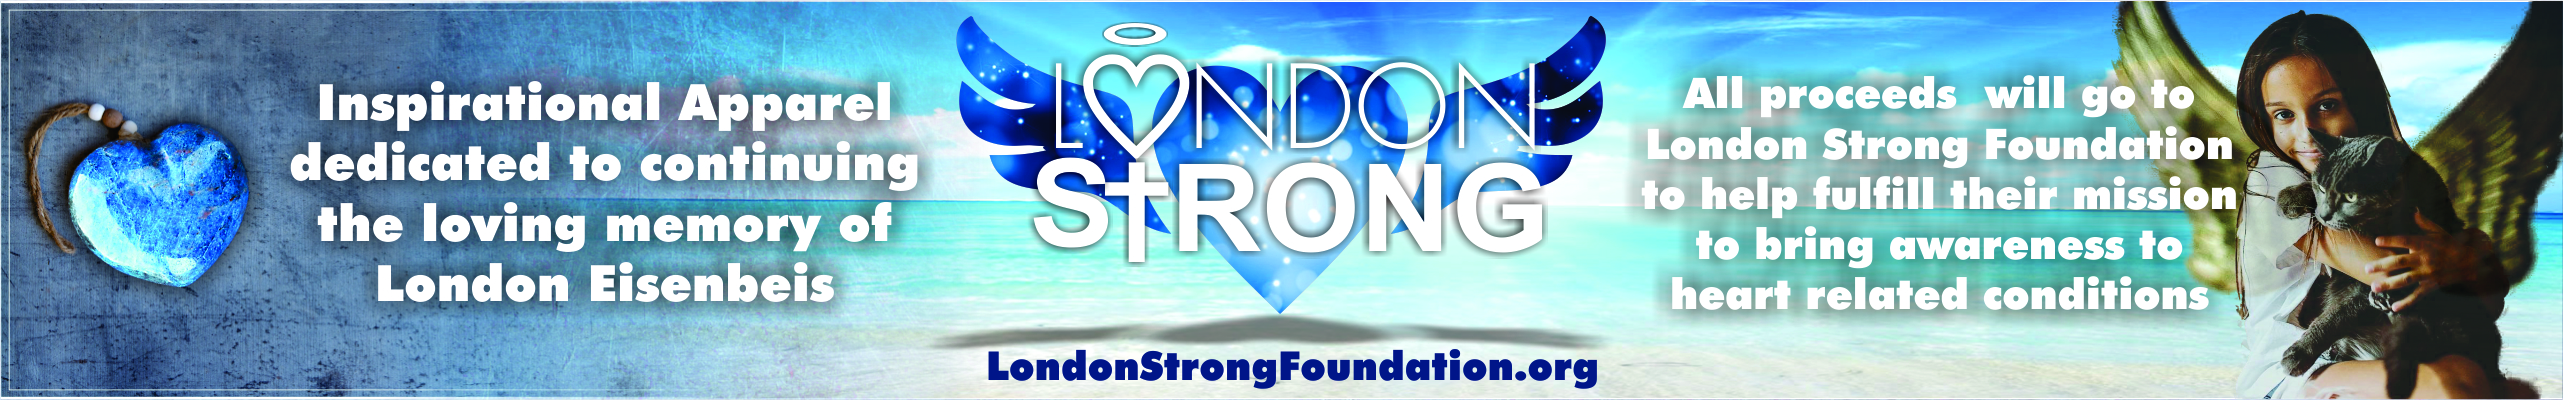 LondonStrong